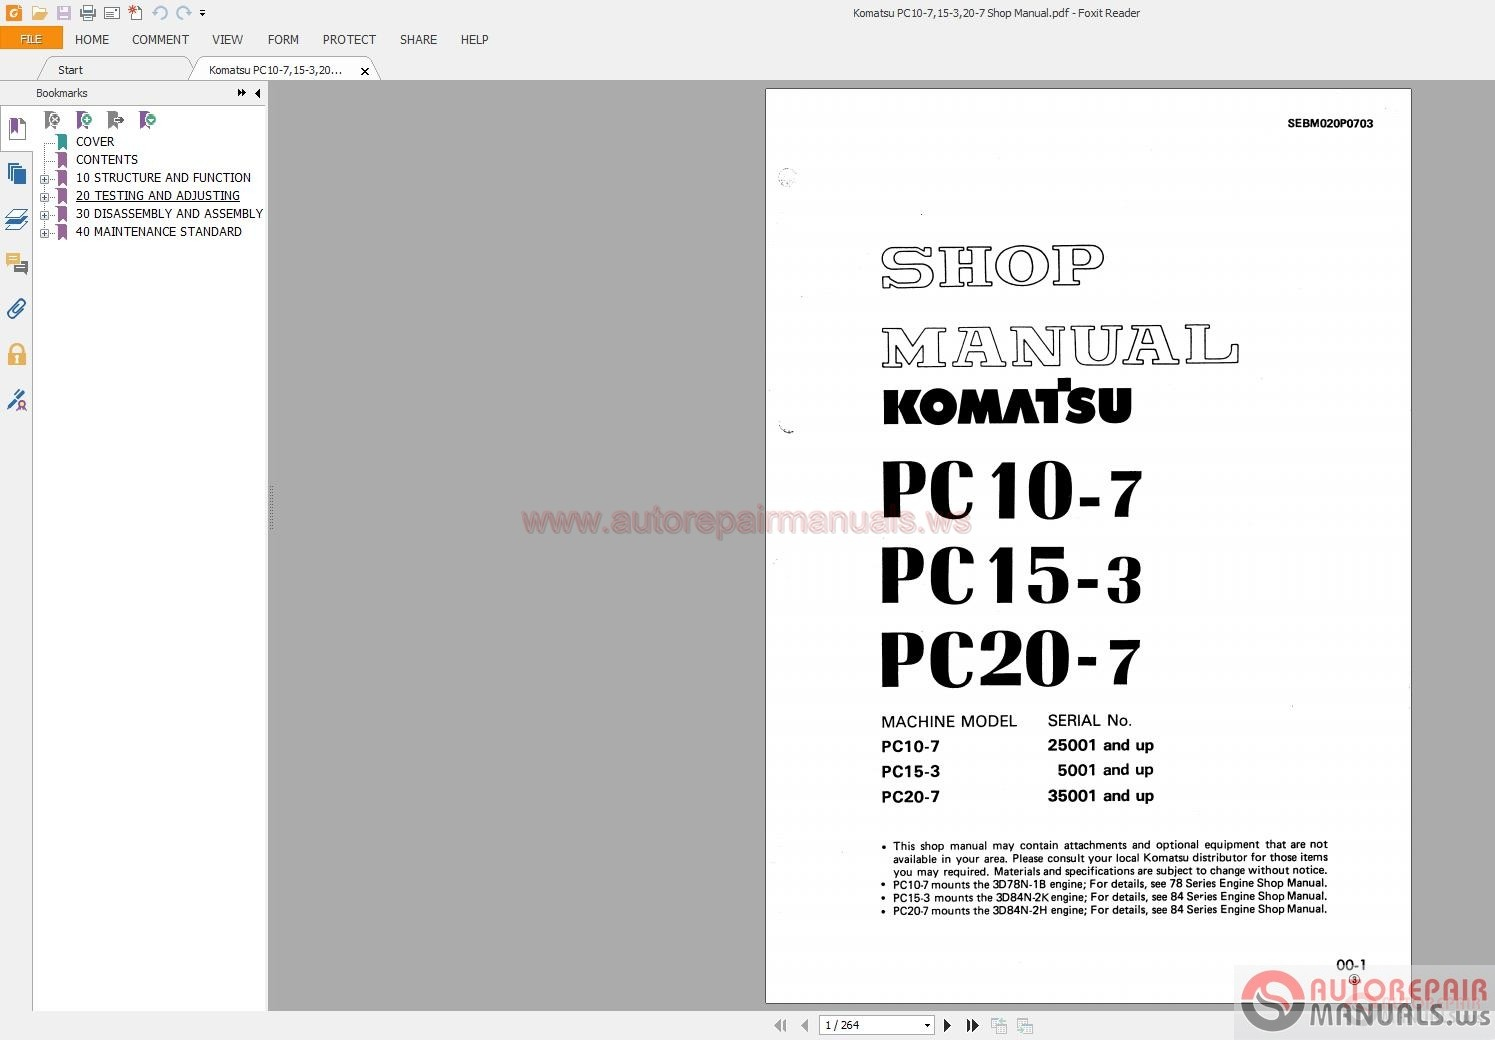 Komatsu PC10-7,15-3,20-7 Shop Manual | Auto Repair Manual